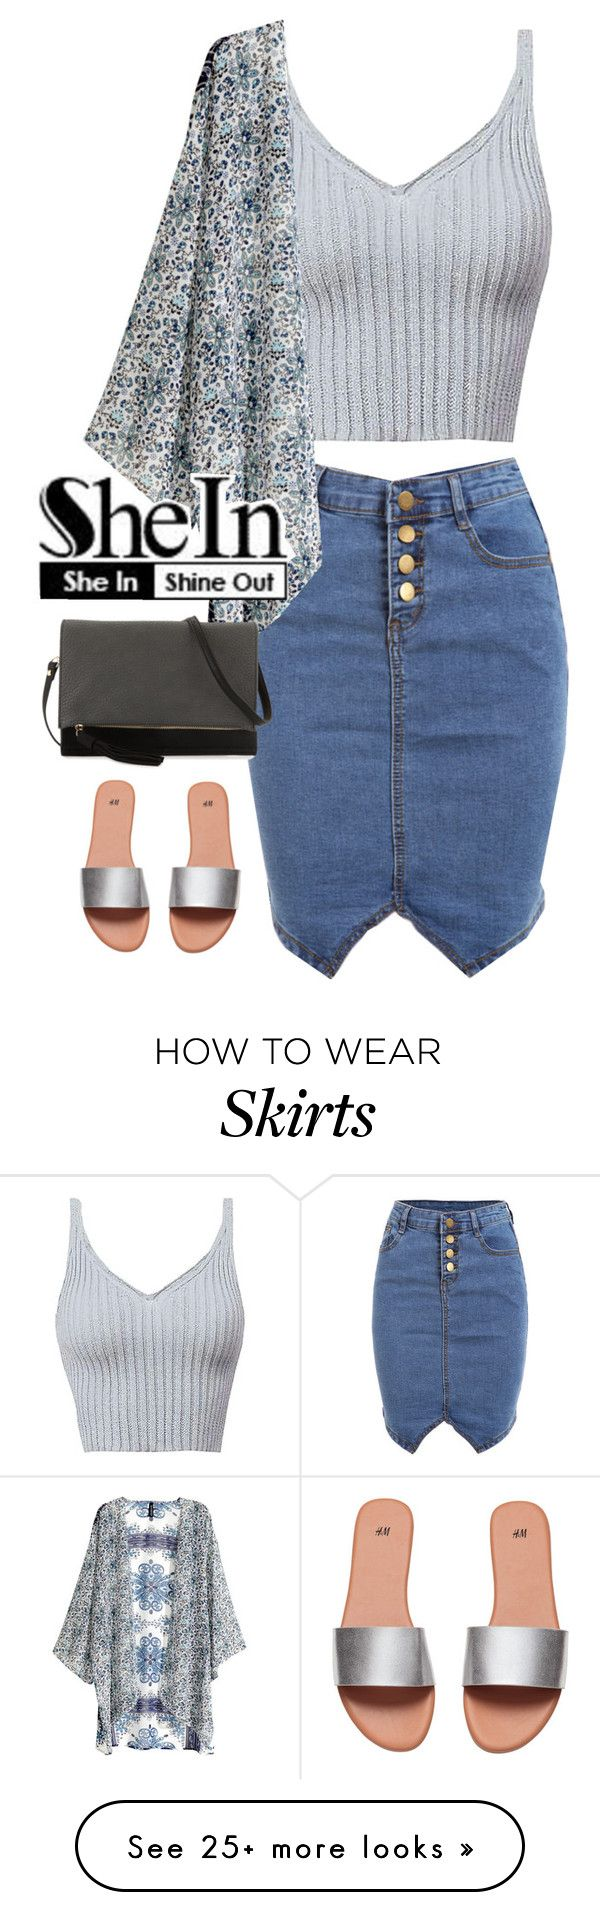 """Pencil Denim Skirt"" by ali-marsilla on Polyvore featuring H&M and Urban Originals"